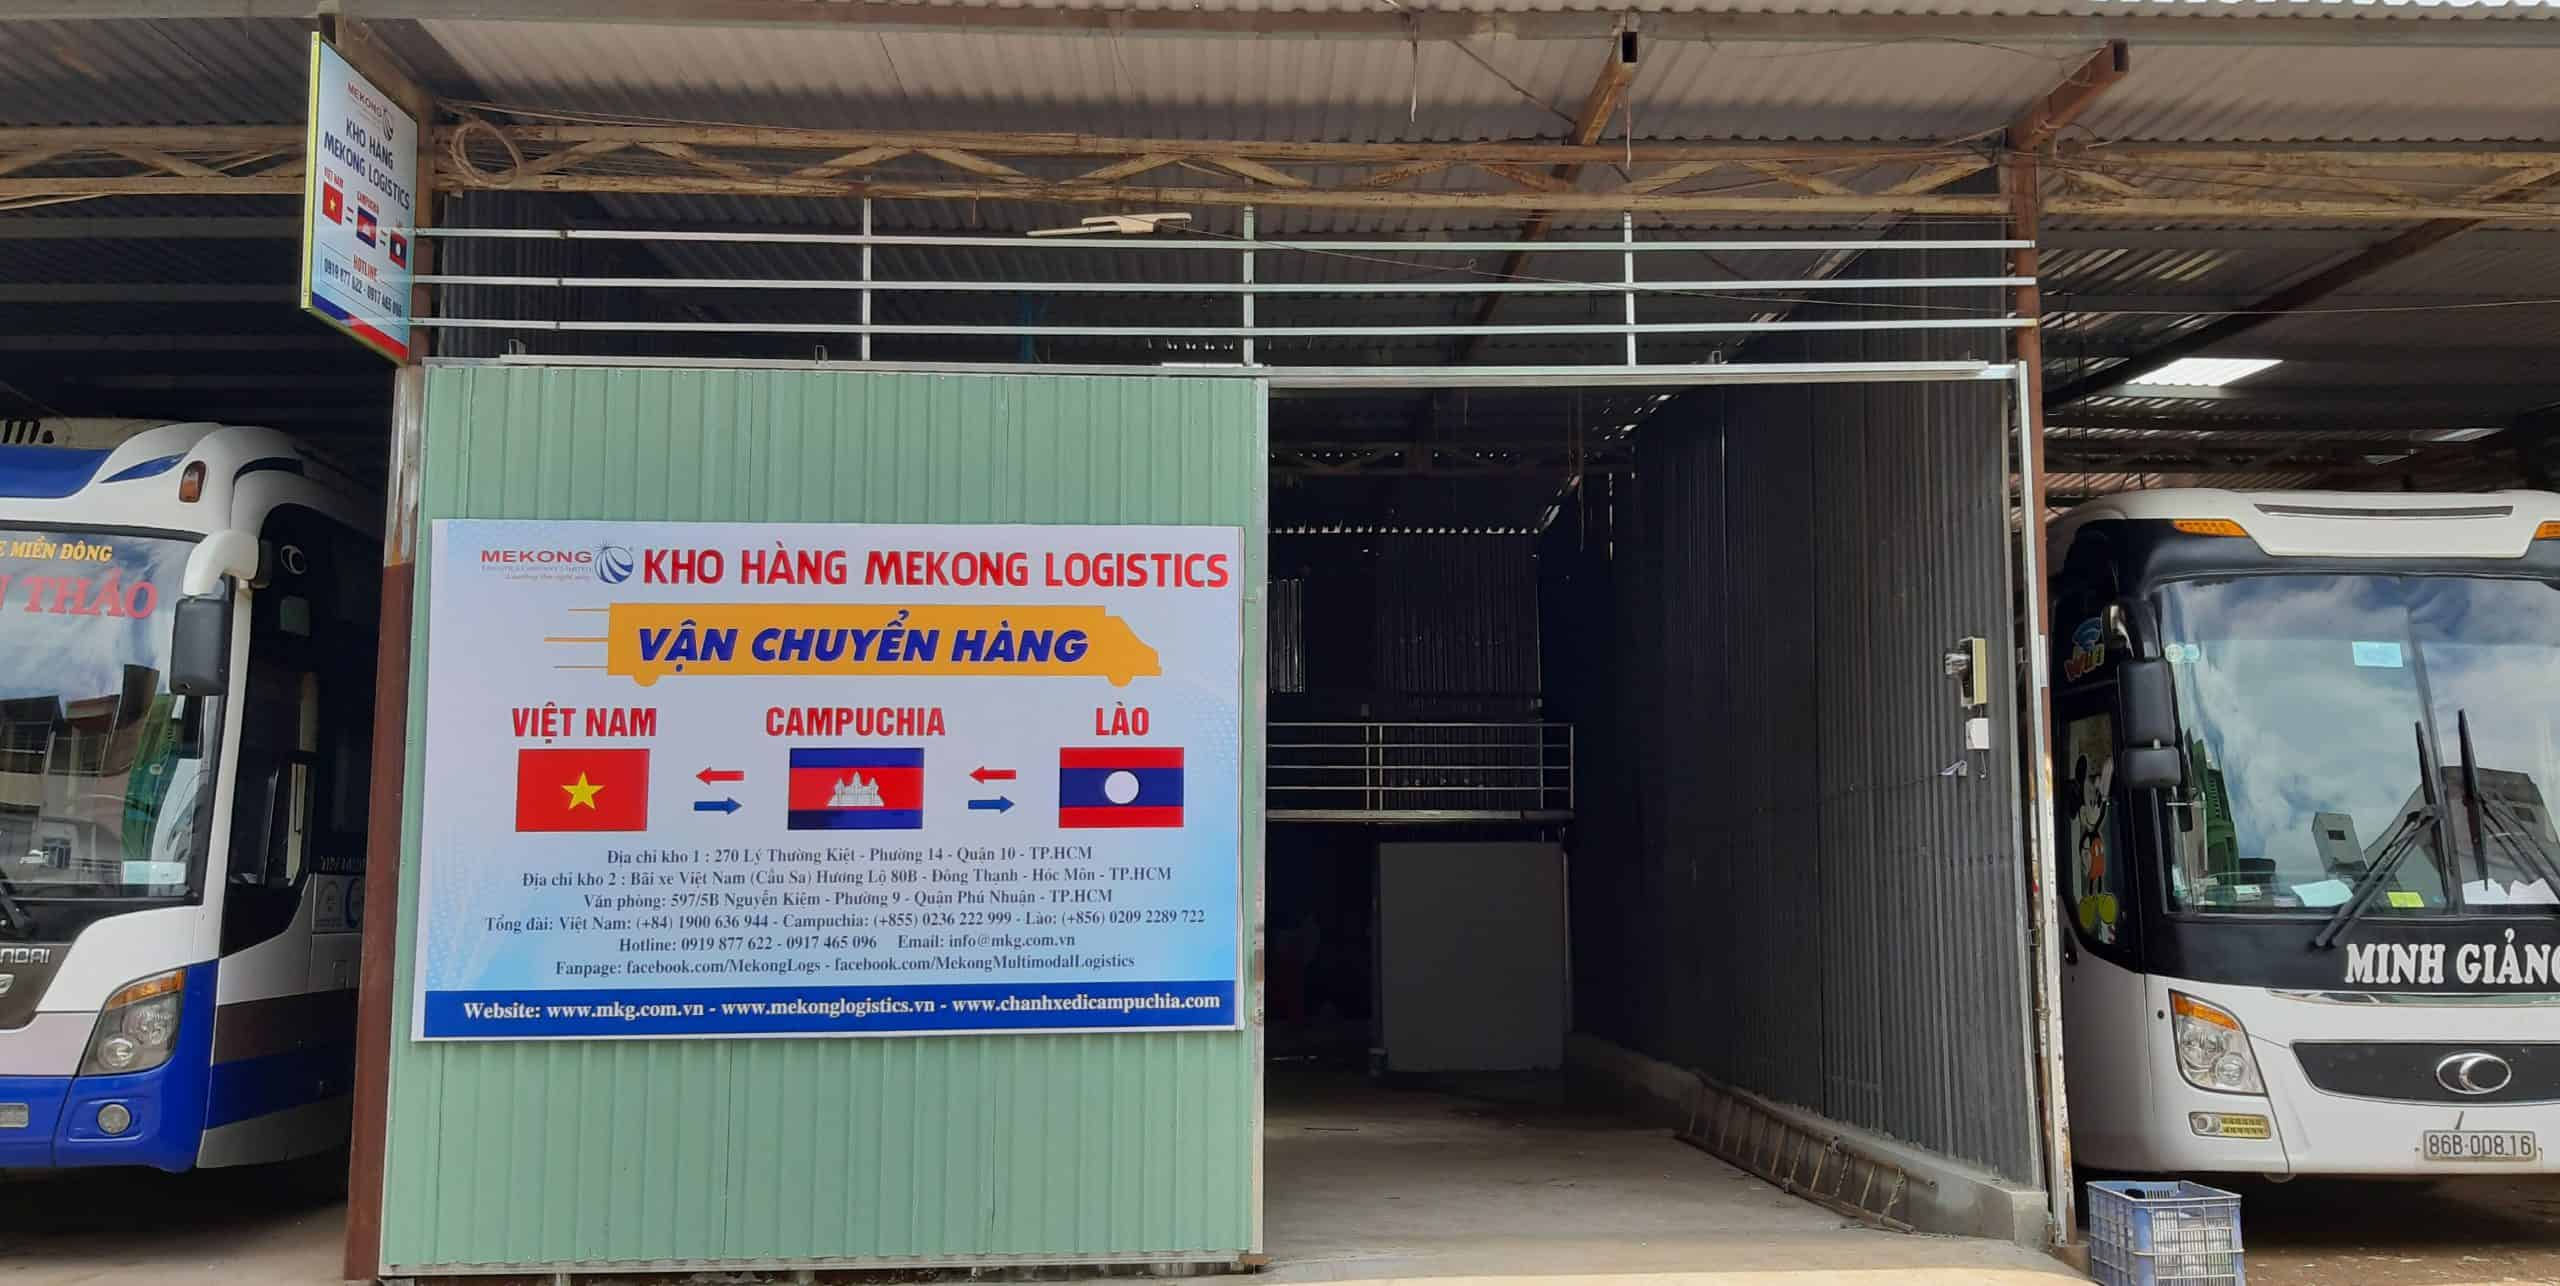 Mekong Logistics warehouse in the heart of Ho Chi Minh City